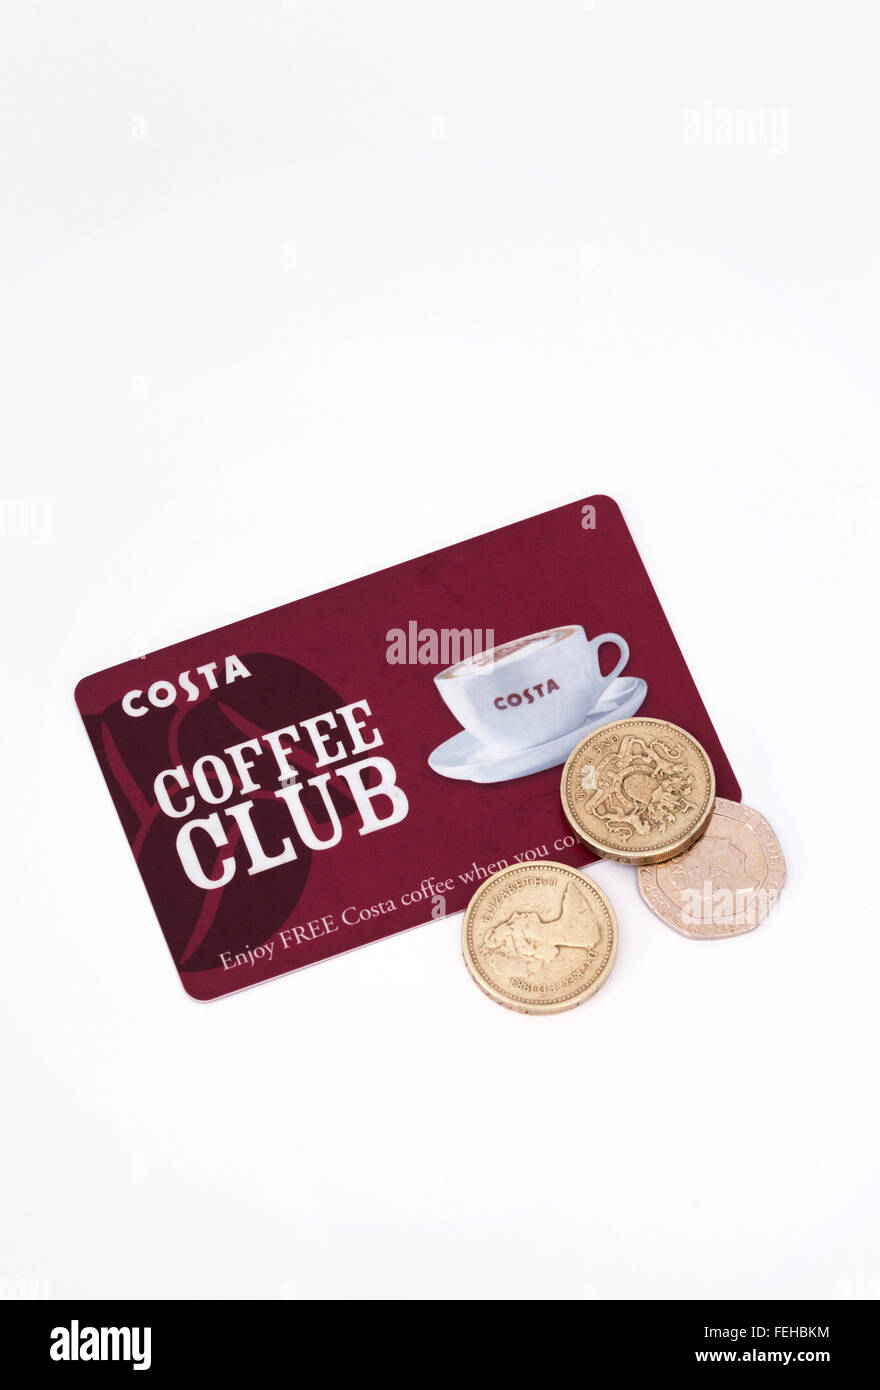 Costa Coffee club card and coins on a white background - Stock Image